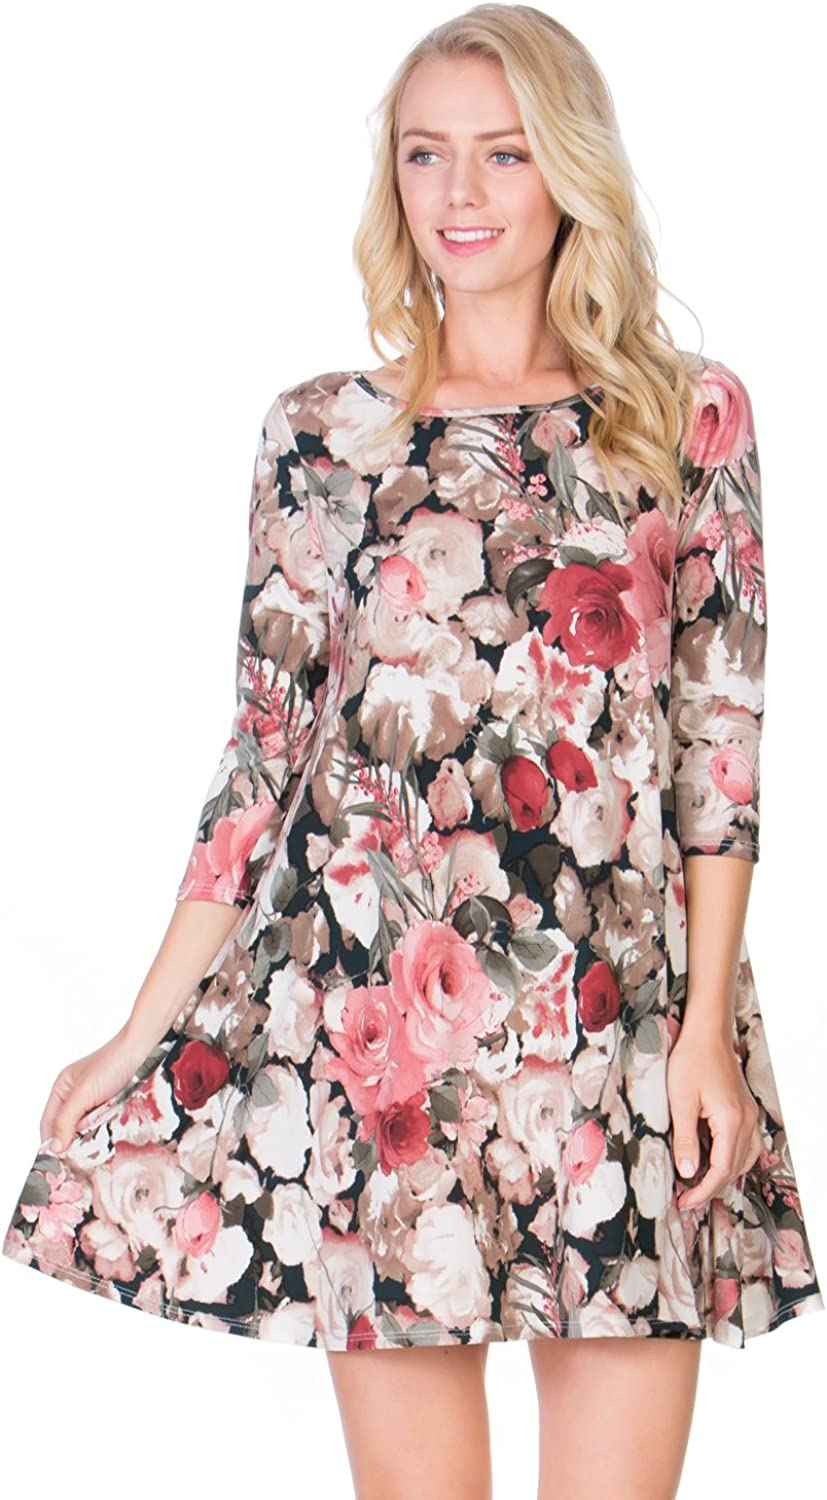 12TREES Womens 3 4 Sleeve Print Side Pocket A Line Loose Fit Comfy Casual Tunic